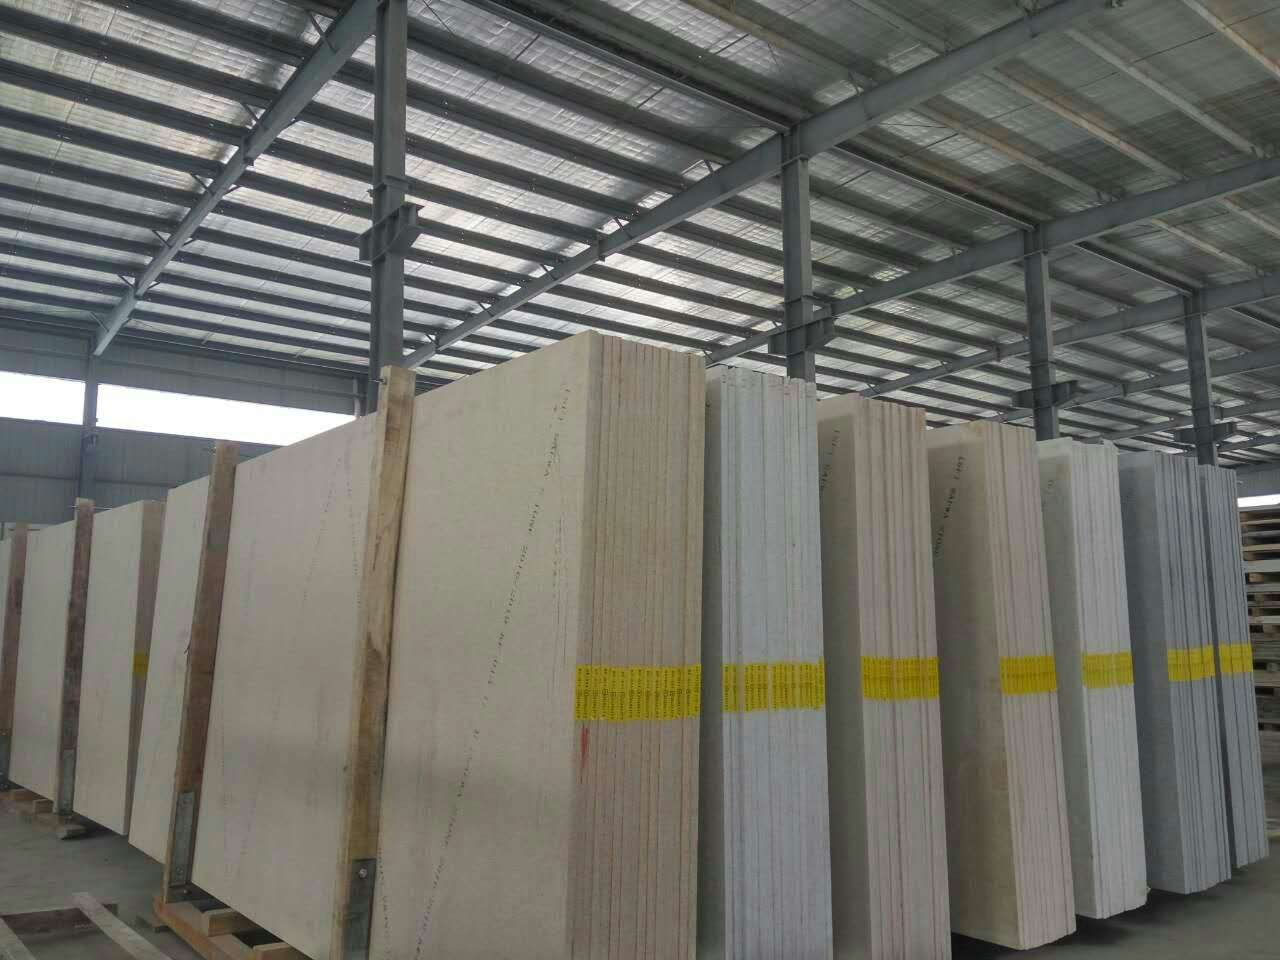 Calacatta Quartz Slab Warehouse